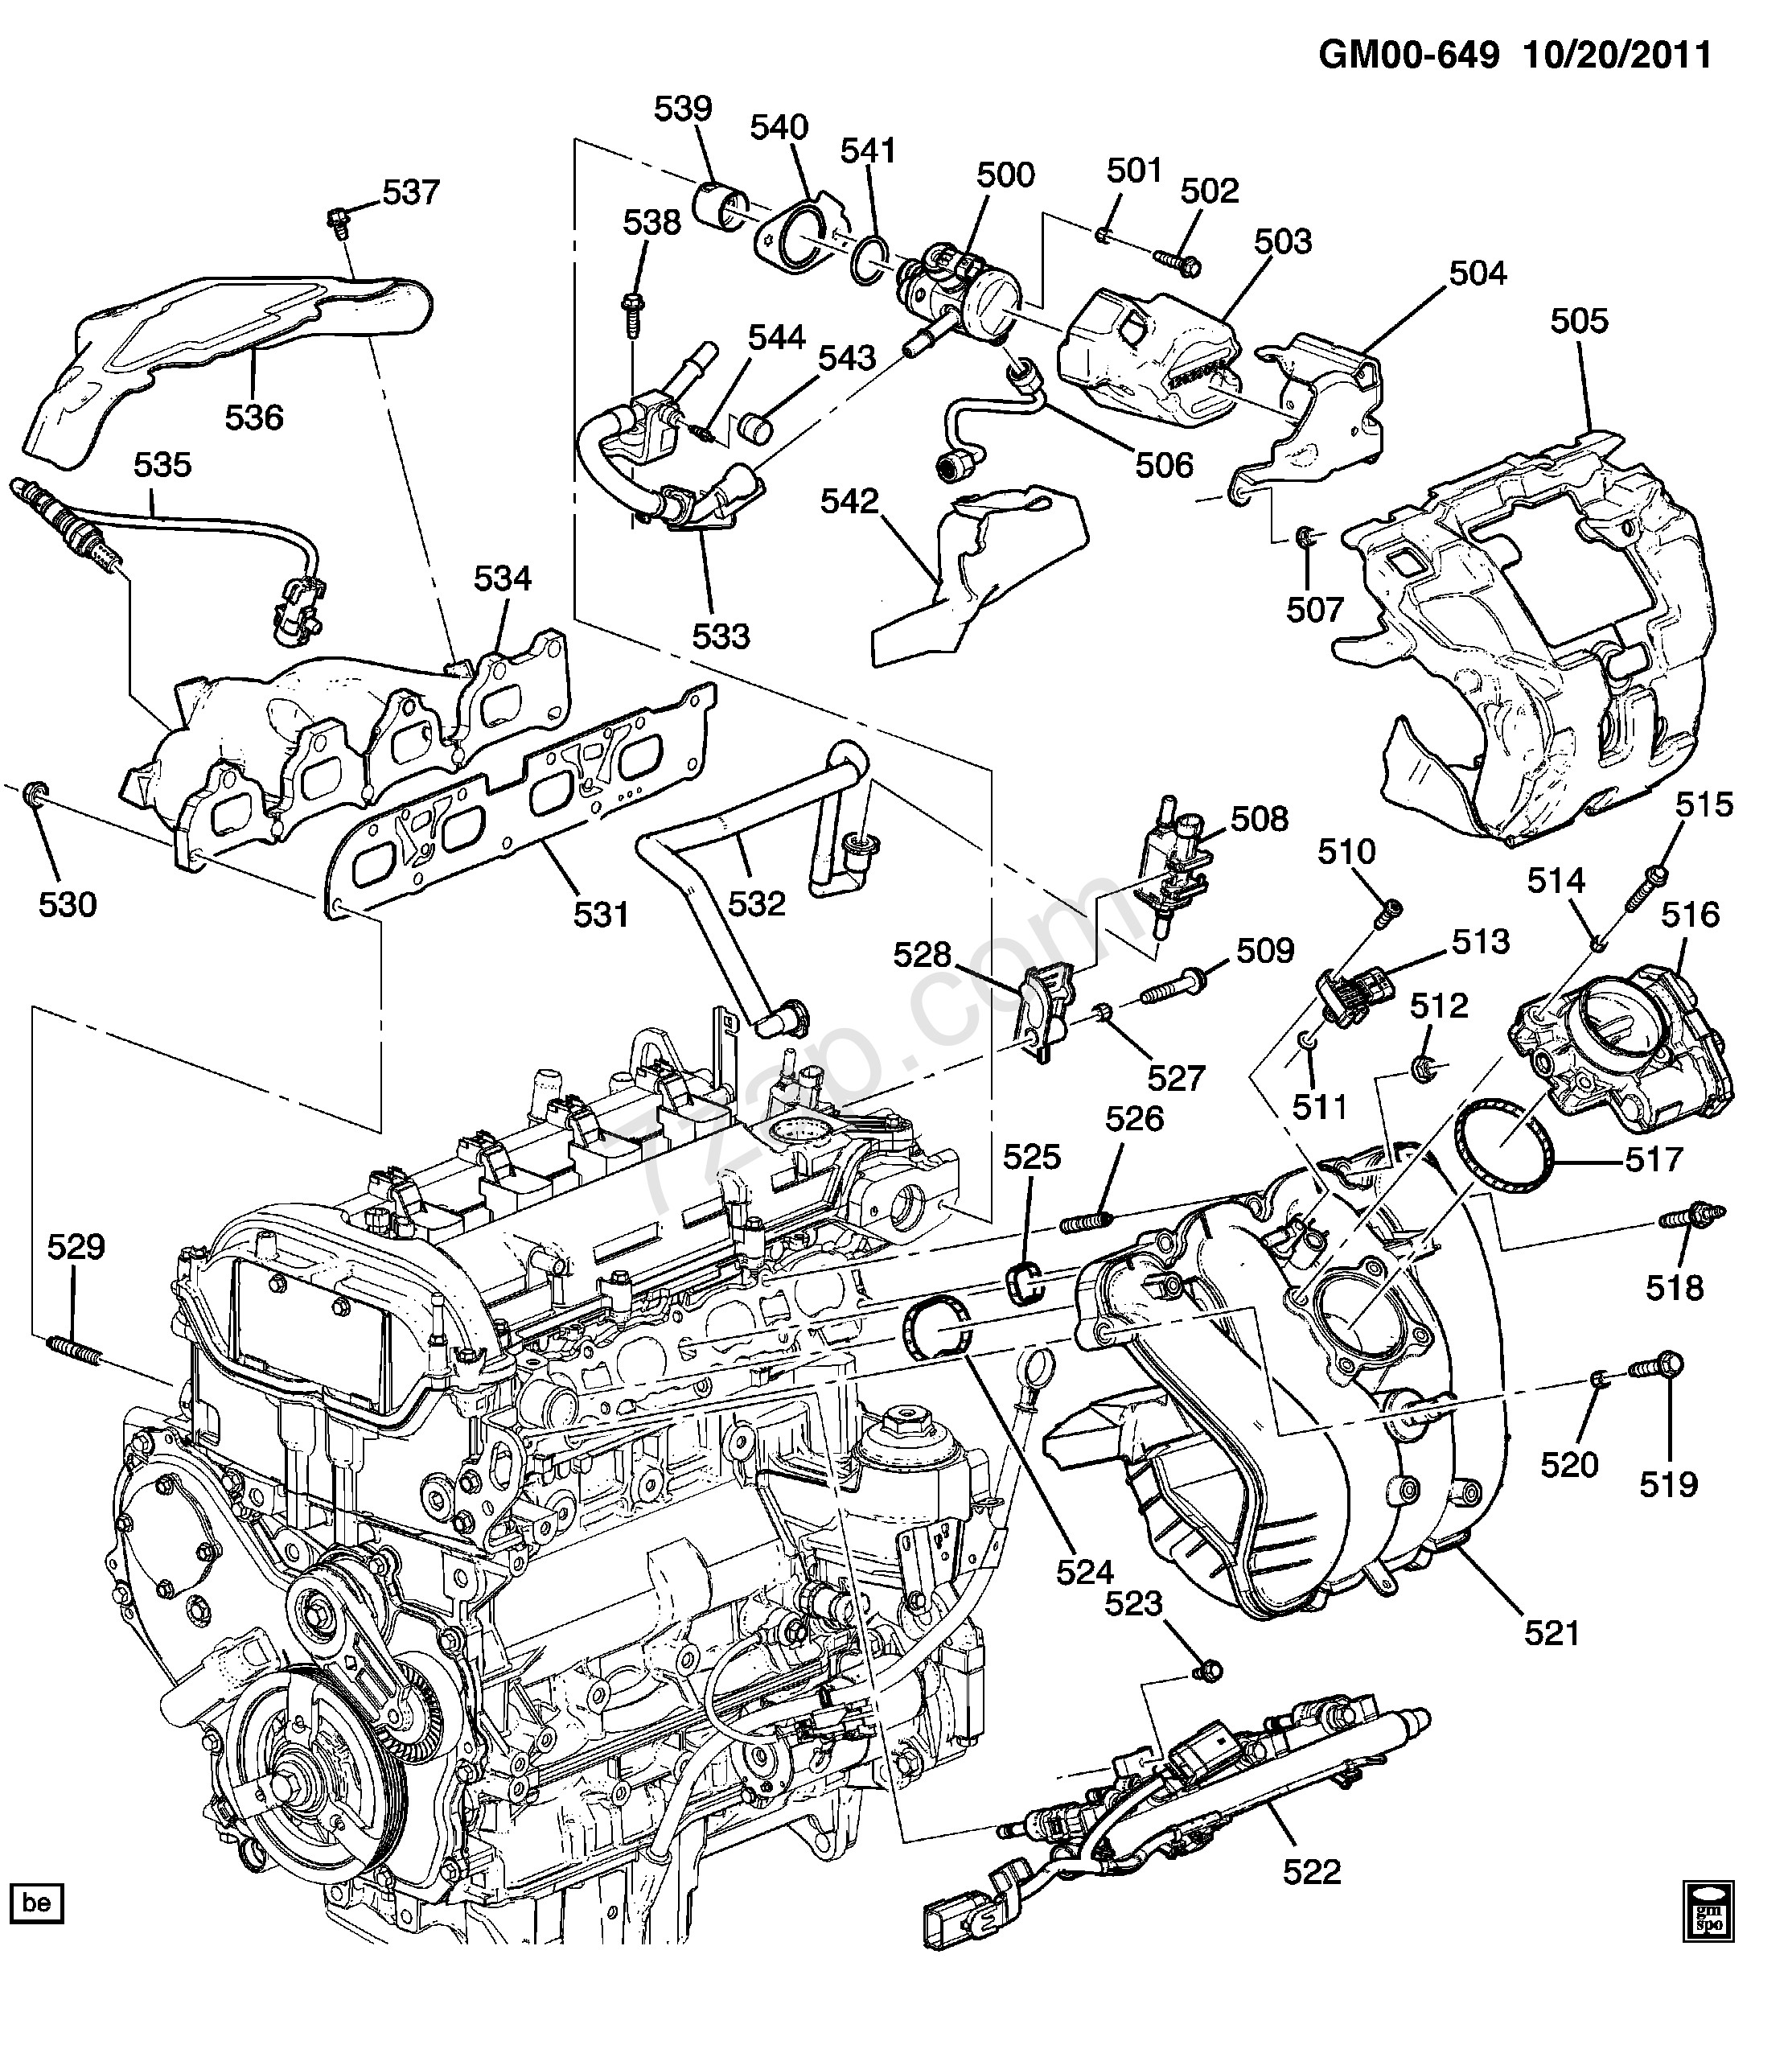 gm engine parts diagram data wiring diagrams u2022 rh naopak co 1987 Chevy 350 Engine Diagram GM Engine Wiring Diagrams